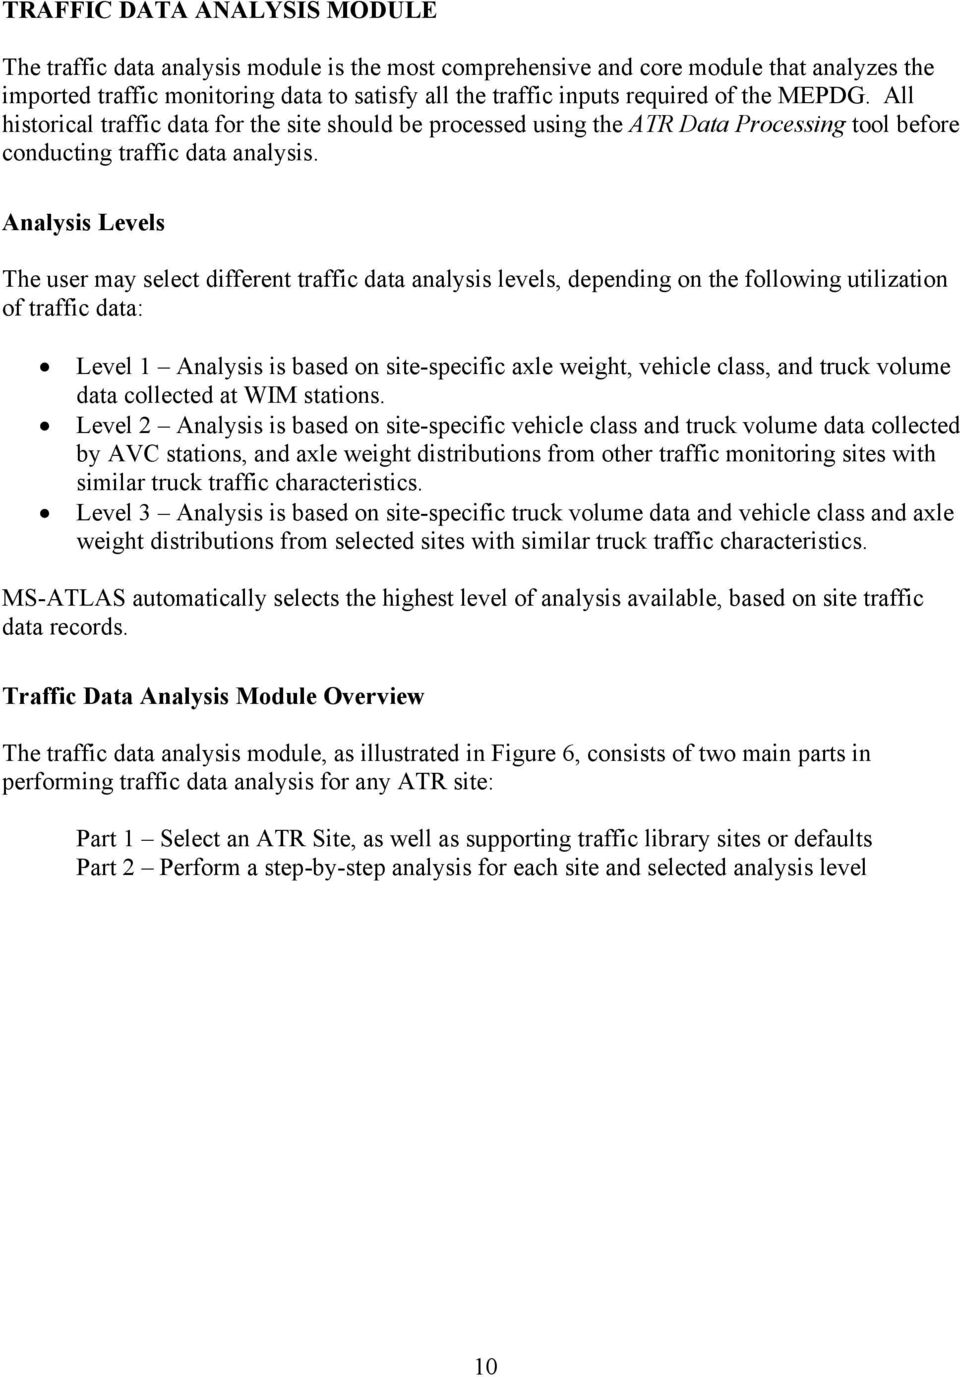 Analysis Levels The user may select different traffic data analysis levels, depending on the following utilization of traffic data: Level 1 Analysis is based on site-specific axle weight, vehicle